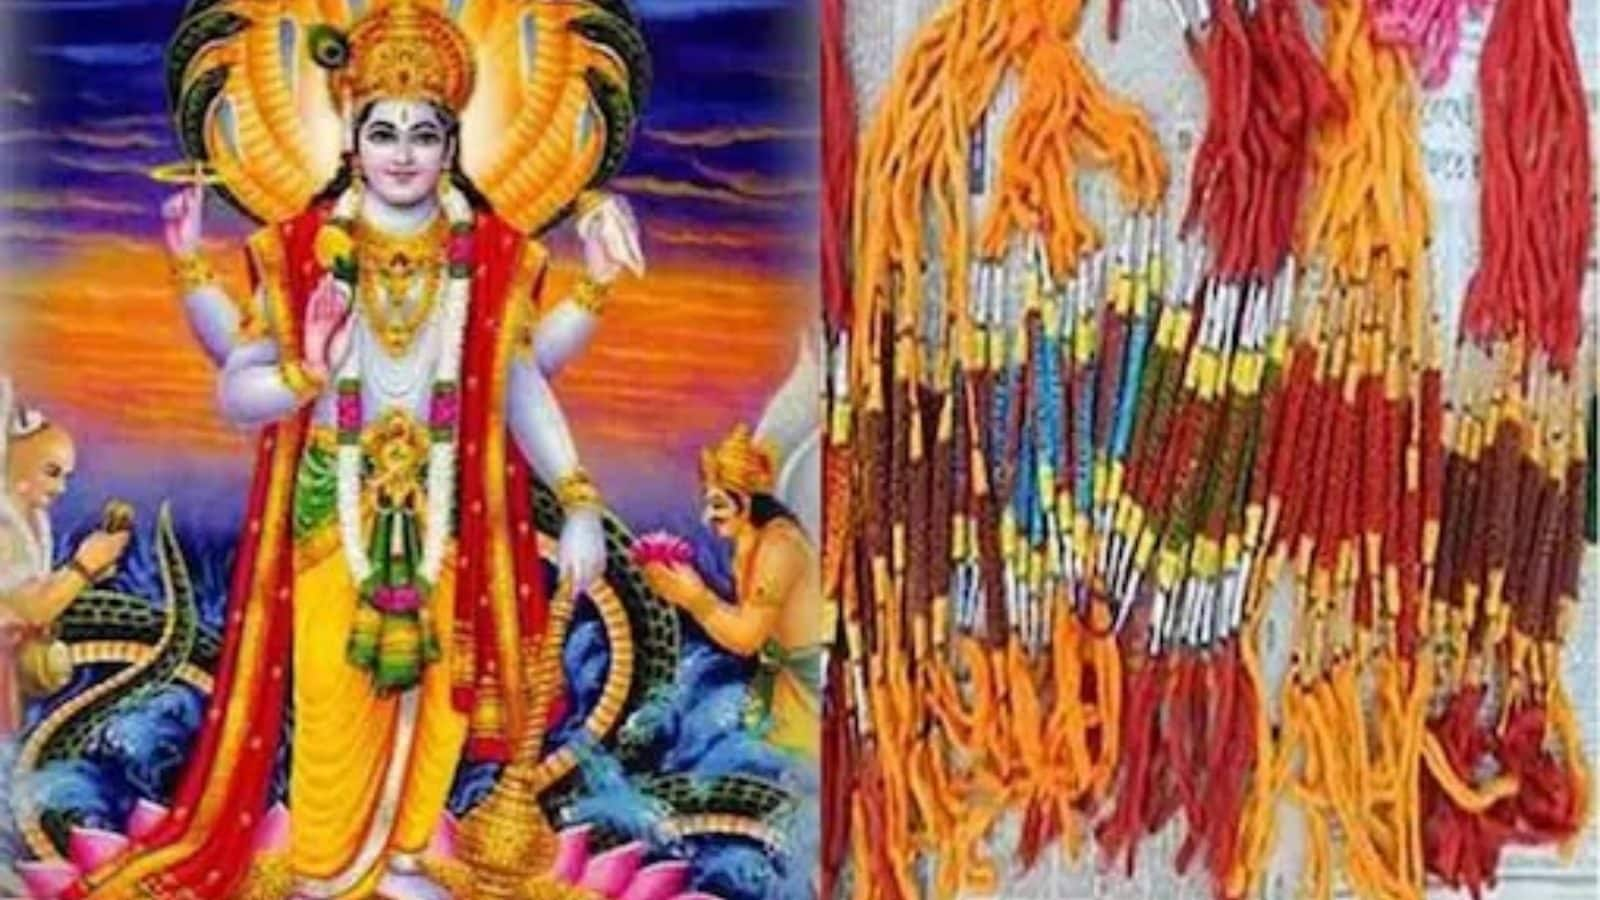 Anant Chaturdashi: Significance of Tying Anant Sutra to Right Hand on the Occasion